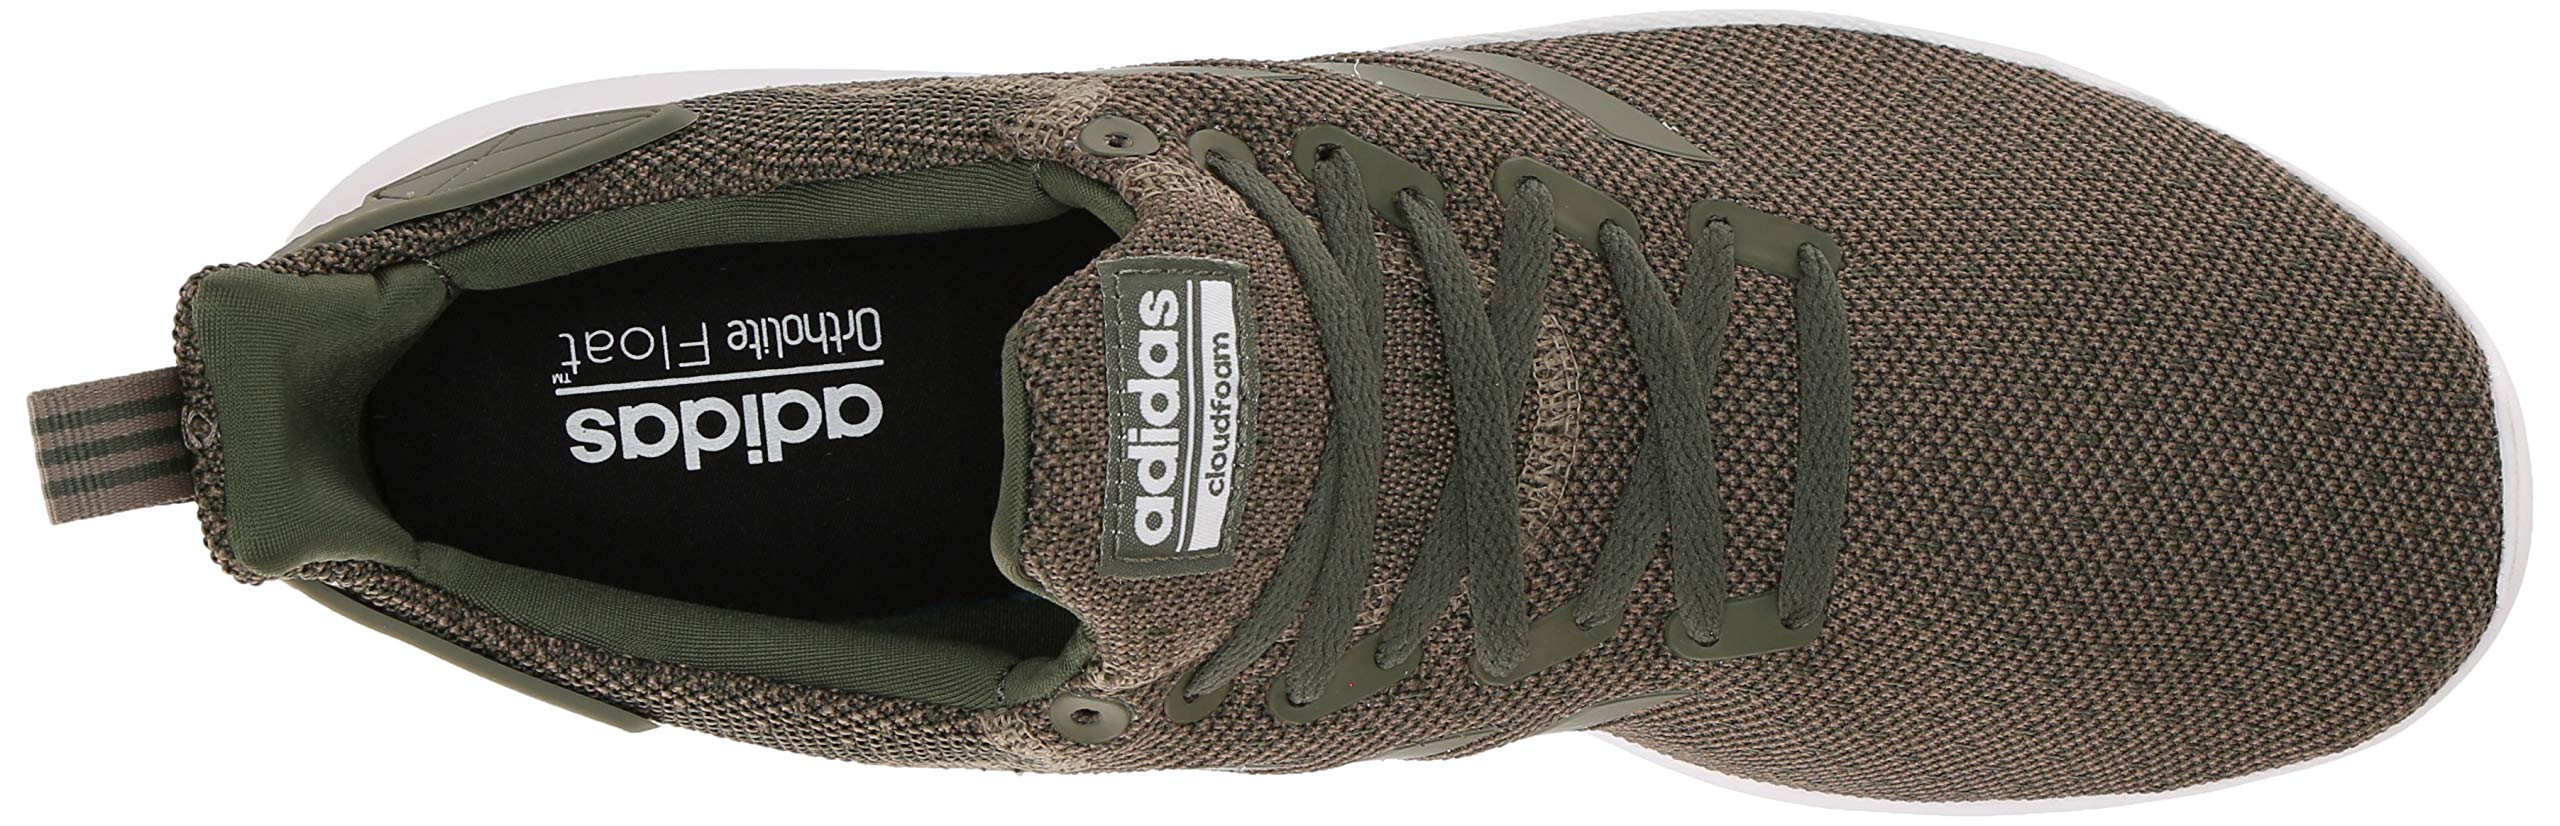 adidas Men's Lite Racer BYD Running Shoe, Trace Cargo/Base Green/White, 10 M US by adidas (Image #8)